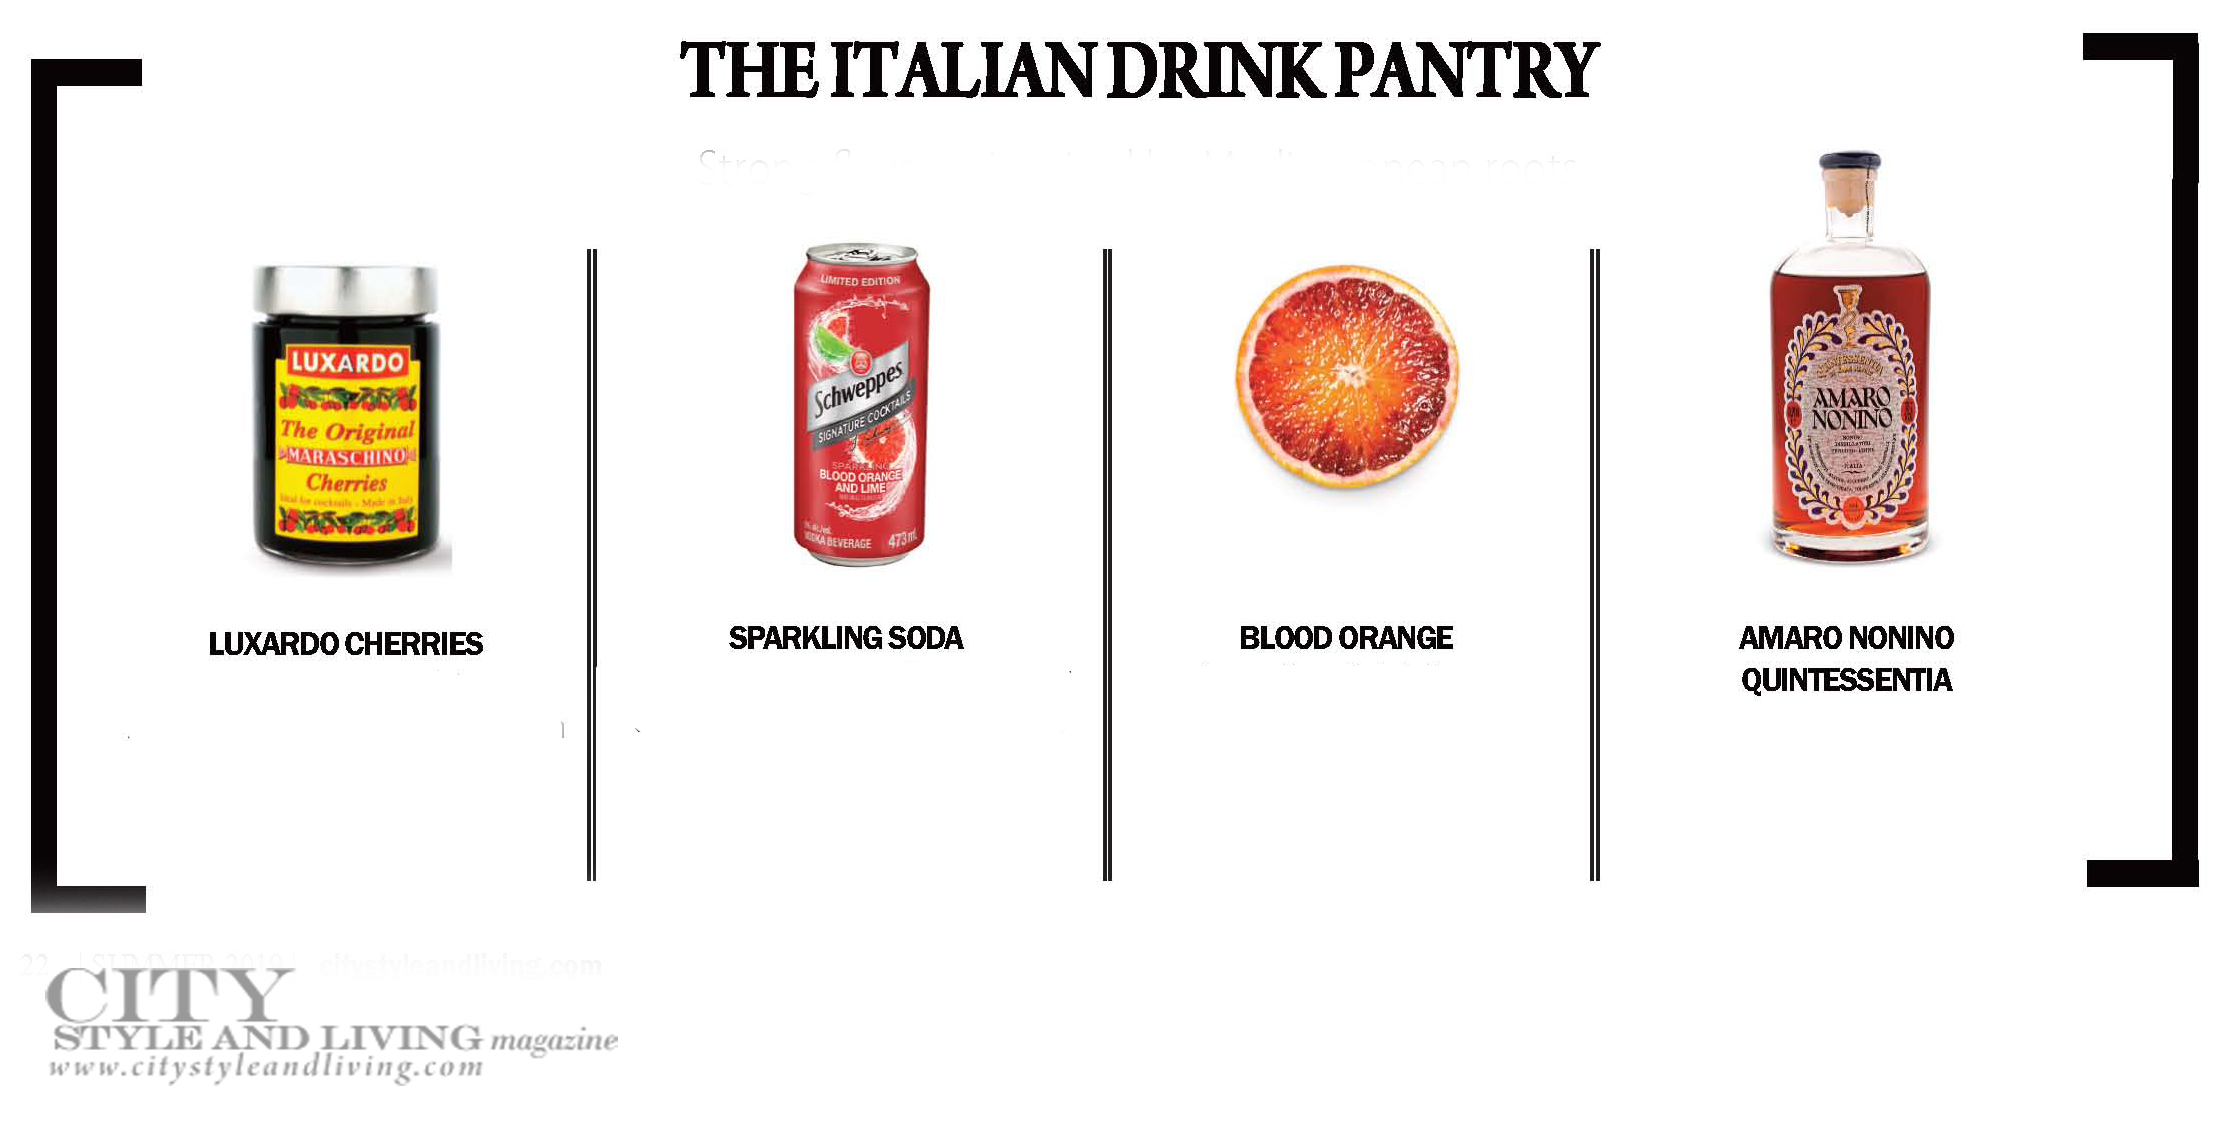 City Style and Living Magazine Summer 2019 Global cocktails Italian Drink Pantry